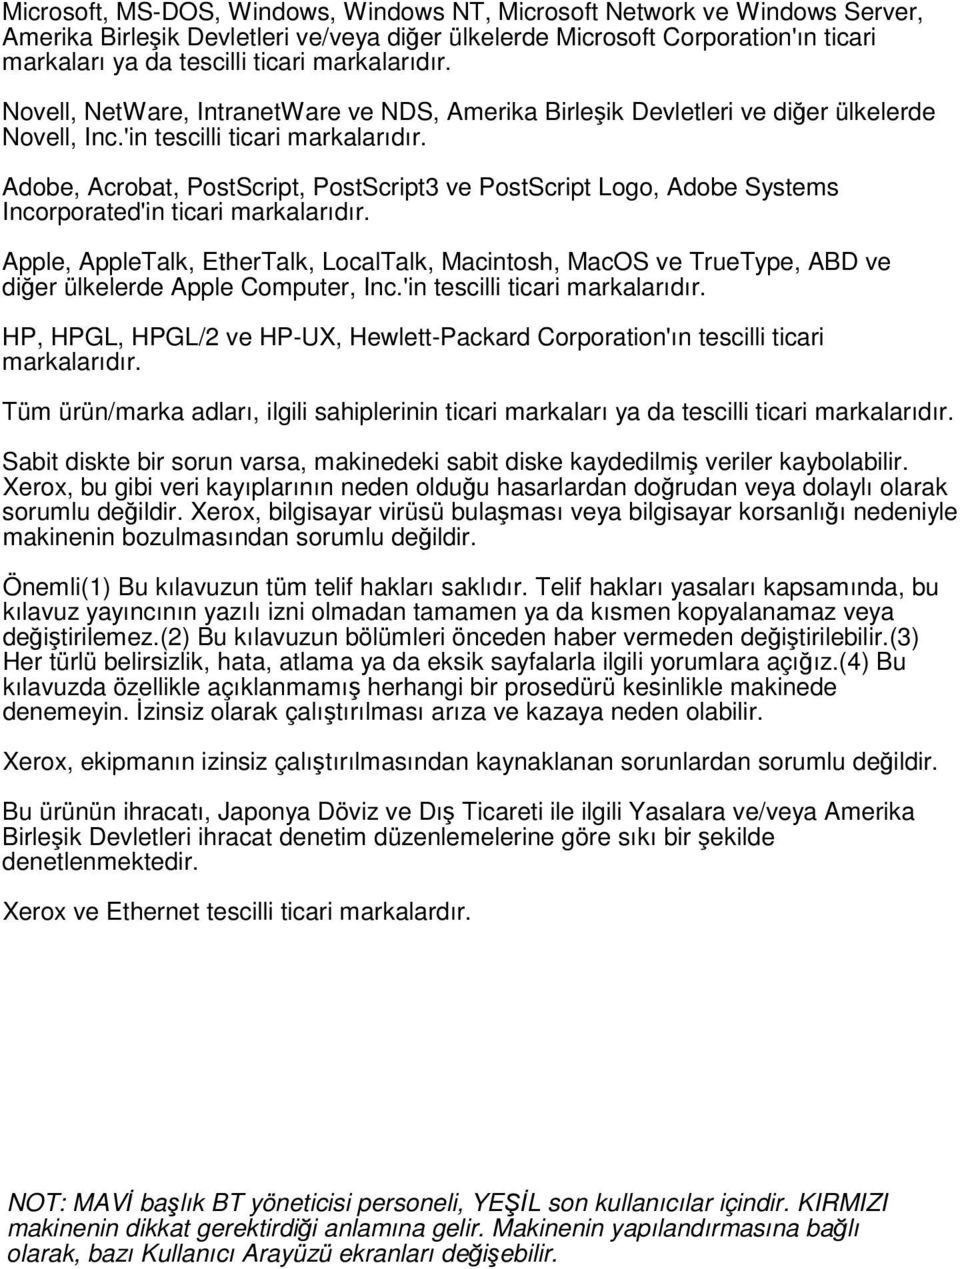 Adobe, Acrobat, PostScript, PostScript3 ve PostScript Logo, Adobe Systems Incorporated'in ticari markalarıdır.